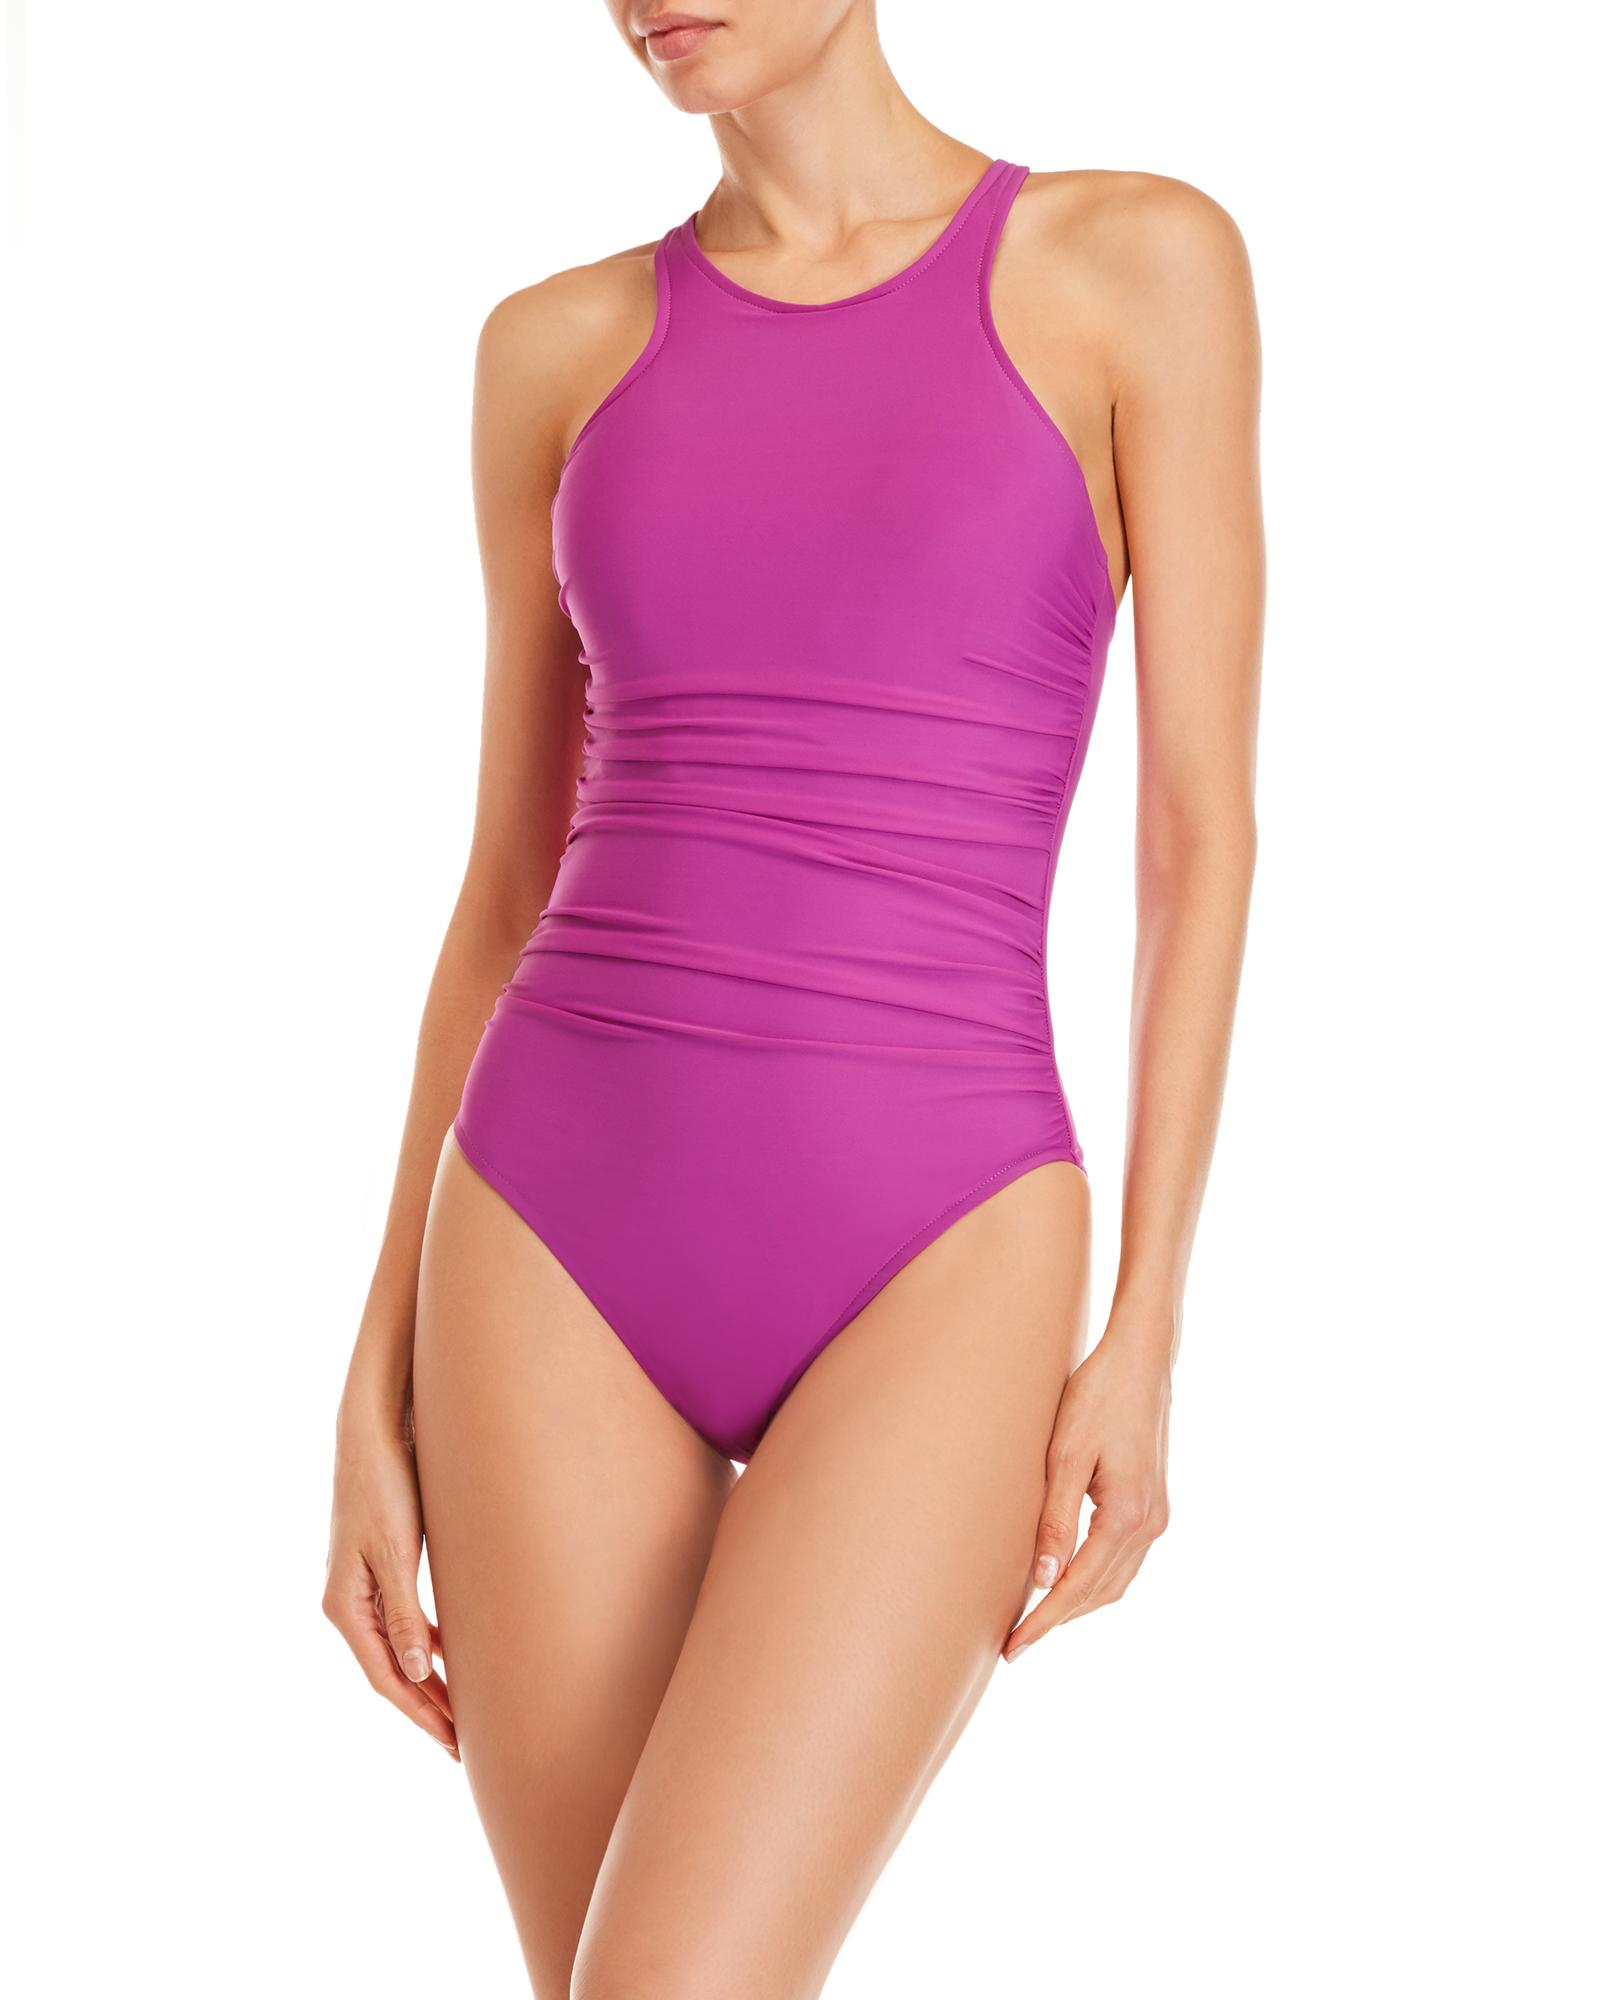 18882fefbe8a0 ... Danika Ruched Tank One-piece Swimsuit - Lyst. View fullscreen